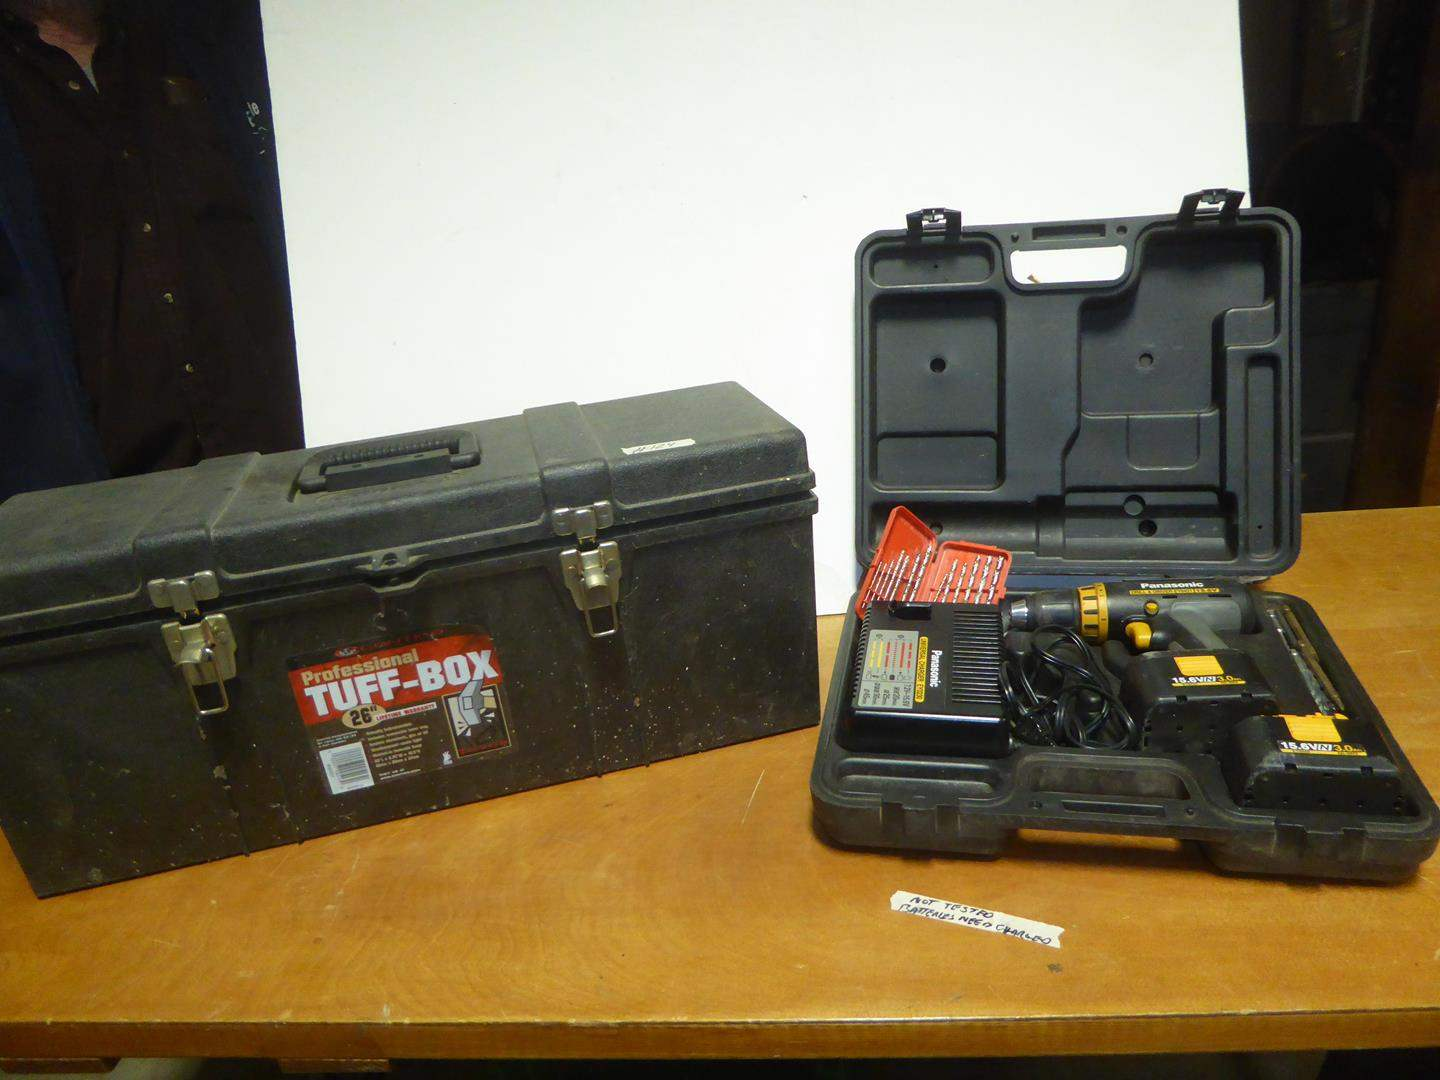 Lot # 124 - Panasonic Cordless Drill / Driver & Professional Tuff-Box (main image)